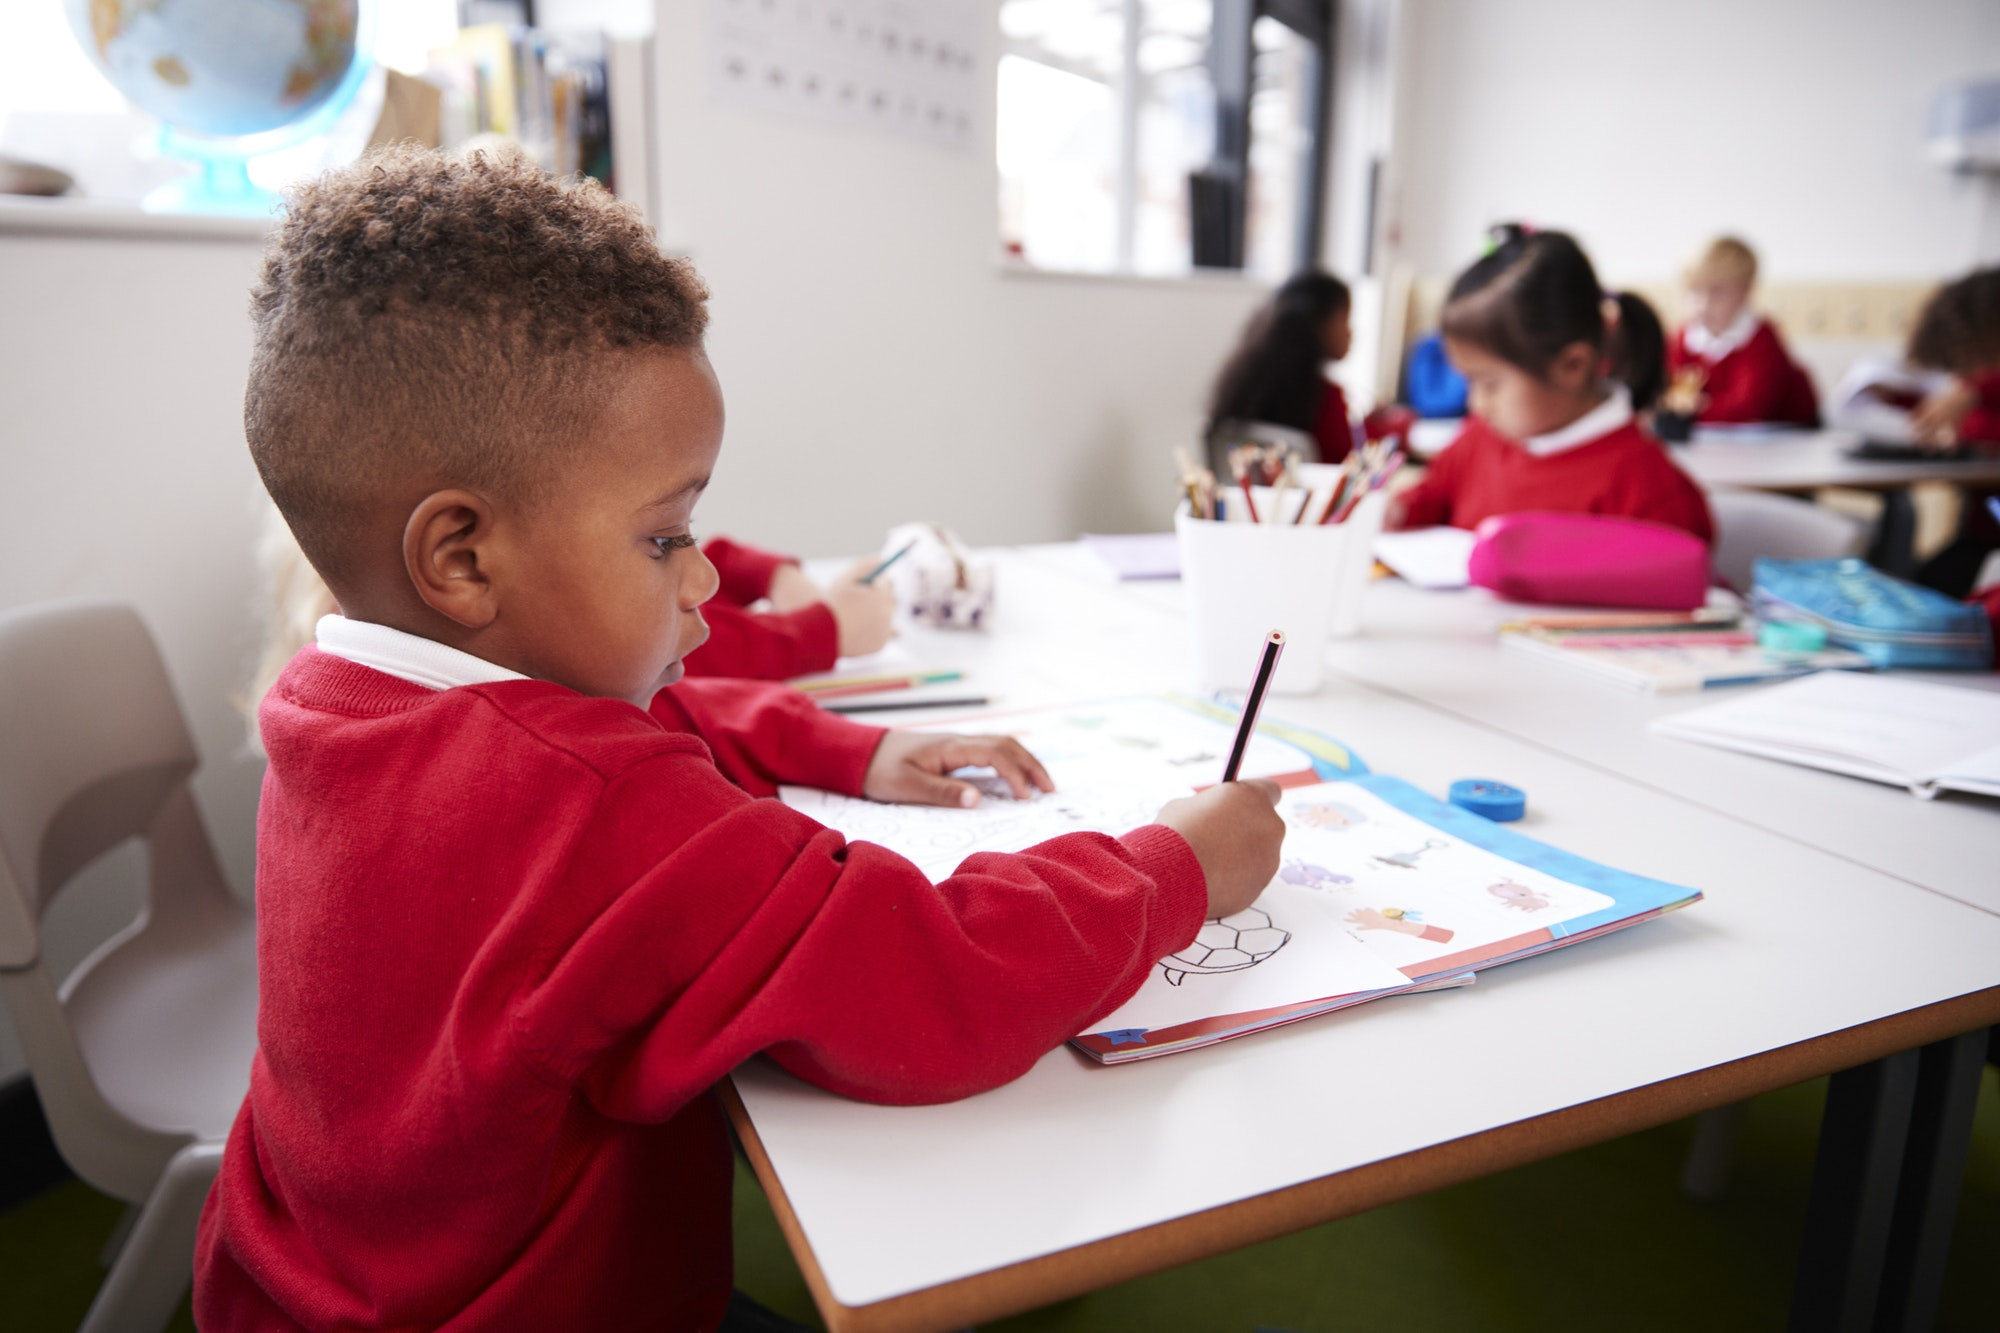 young-black-schoolboy-wearing-school-uniform-sitting-at-a-desk-in-an-infant-school-classroom-drawing-1.jpg